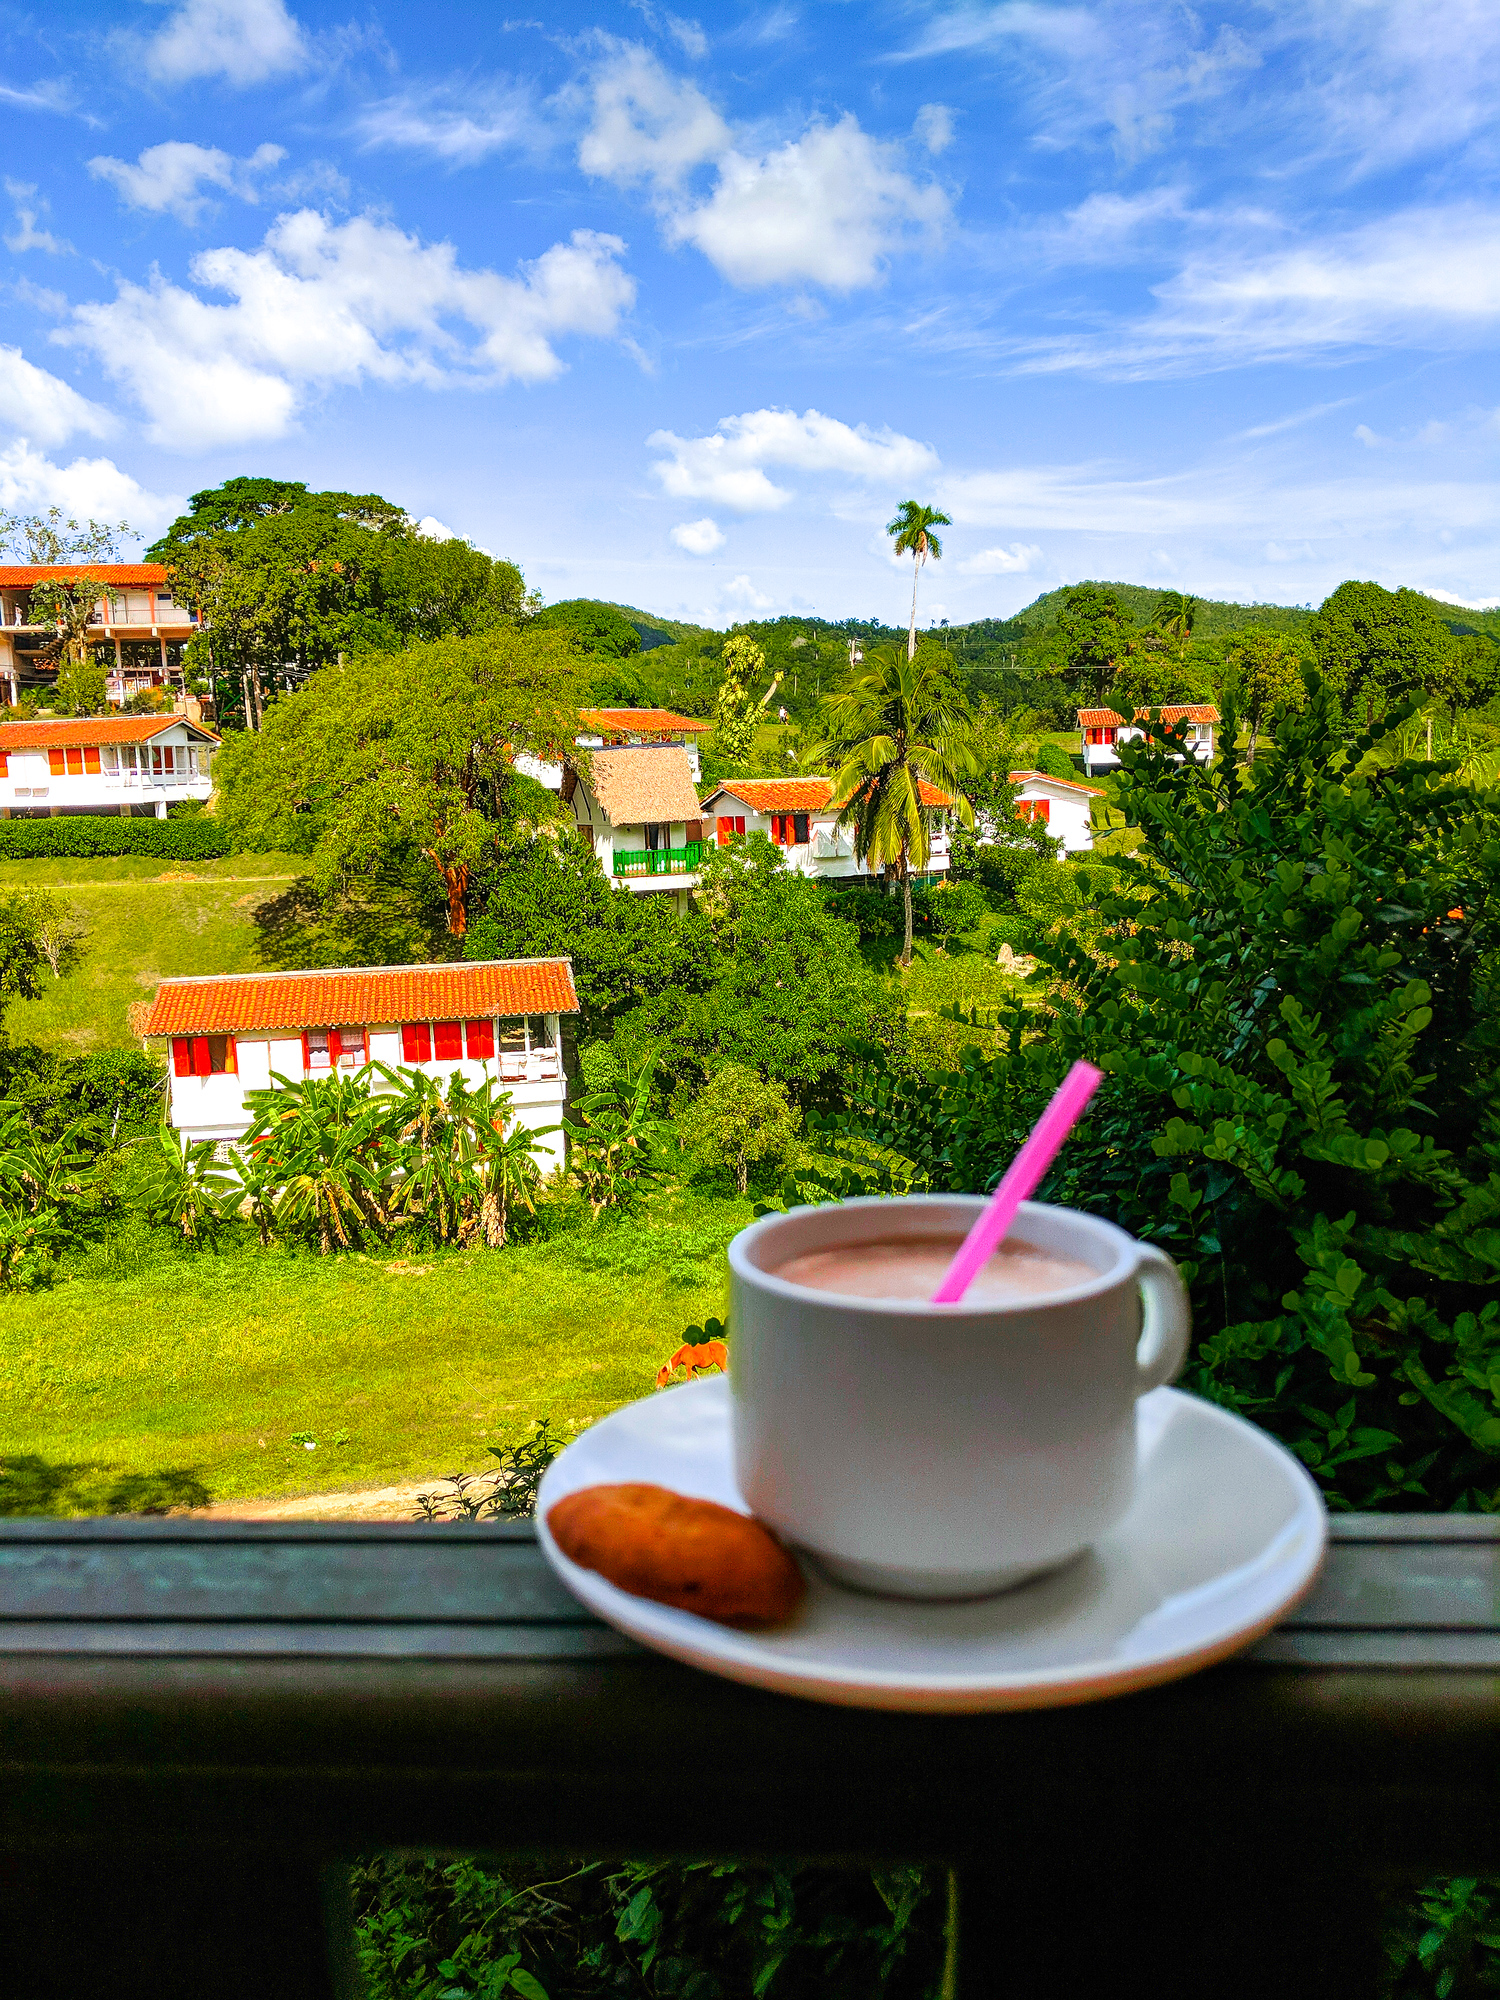 Cafe Terrazas at Cafe Maria in Las Terrazas Cuba, one of the best day trips from Havana.